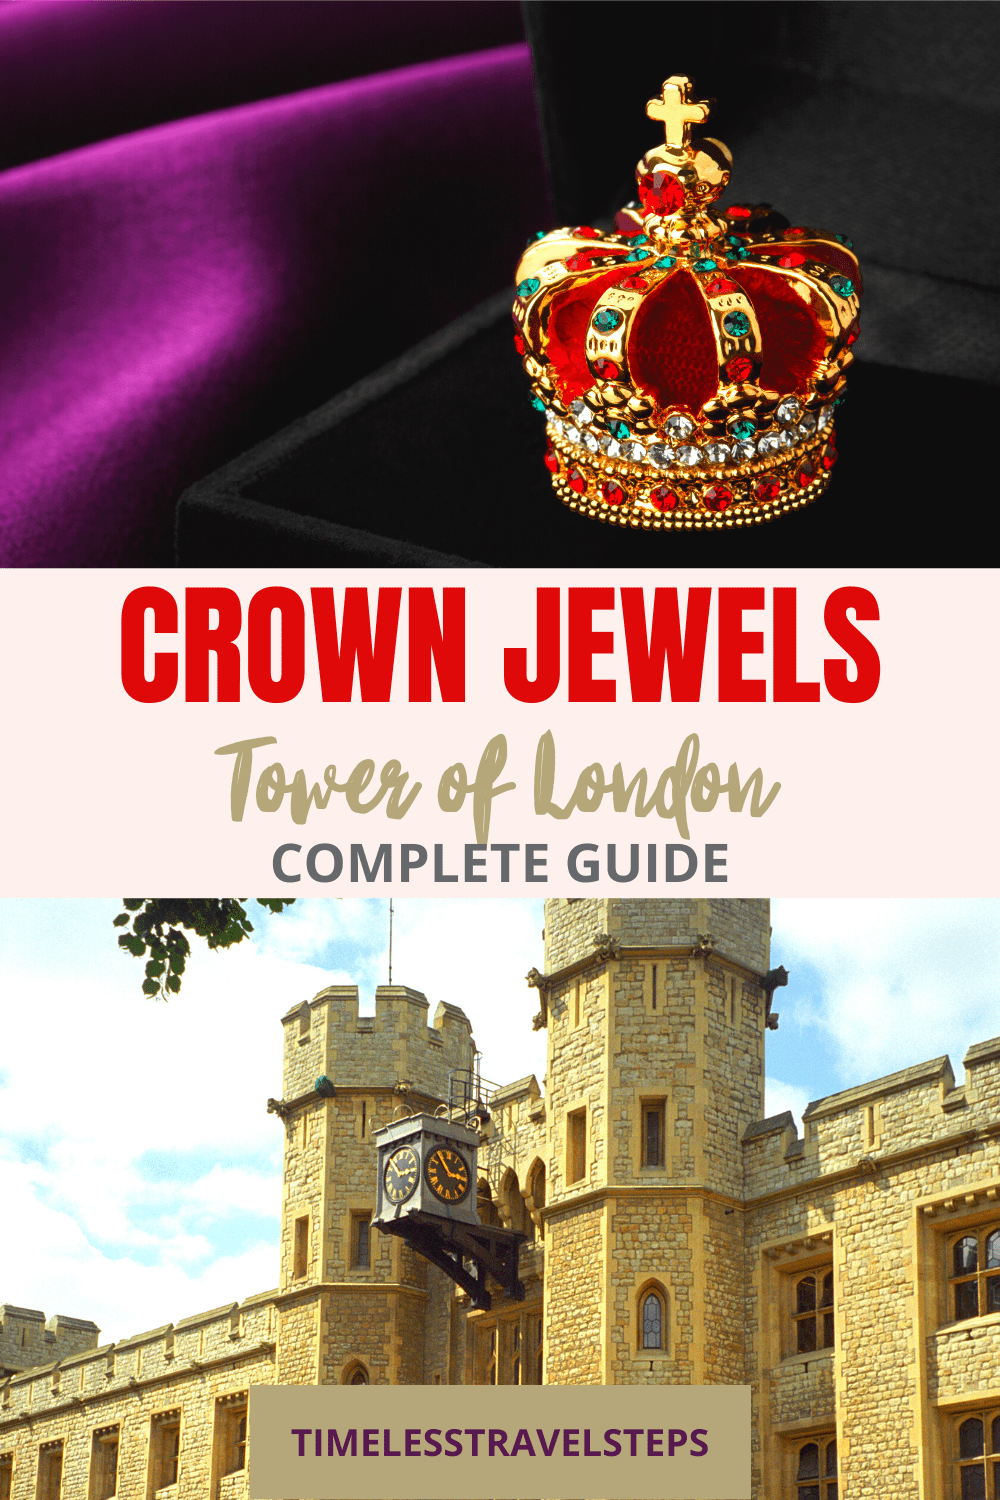 The most famous, and precious of British treasures, the magnificent Crown Jewels at the Tower is an embodiment of superb craftmanship. Take a look here and plan your next visit to the Tower of London | Tower of London | London Travel | Visit London | British History | The Royal Jewels | Historic Royal Palaces | Royal Collection Trust | Visit Britain | National Heritage | Royal Palaces | Train Travel in UK | Visit Scotland | Explore the Scottish Highlands via @GGeorgina_mytimelessfootsteps/